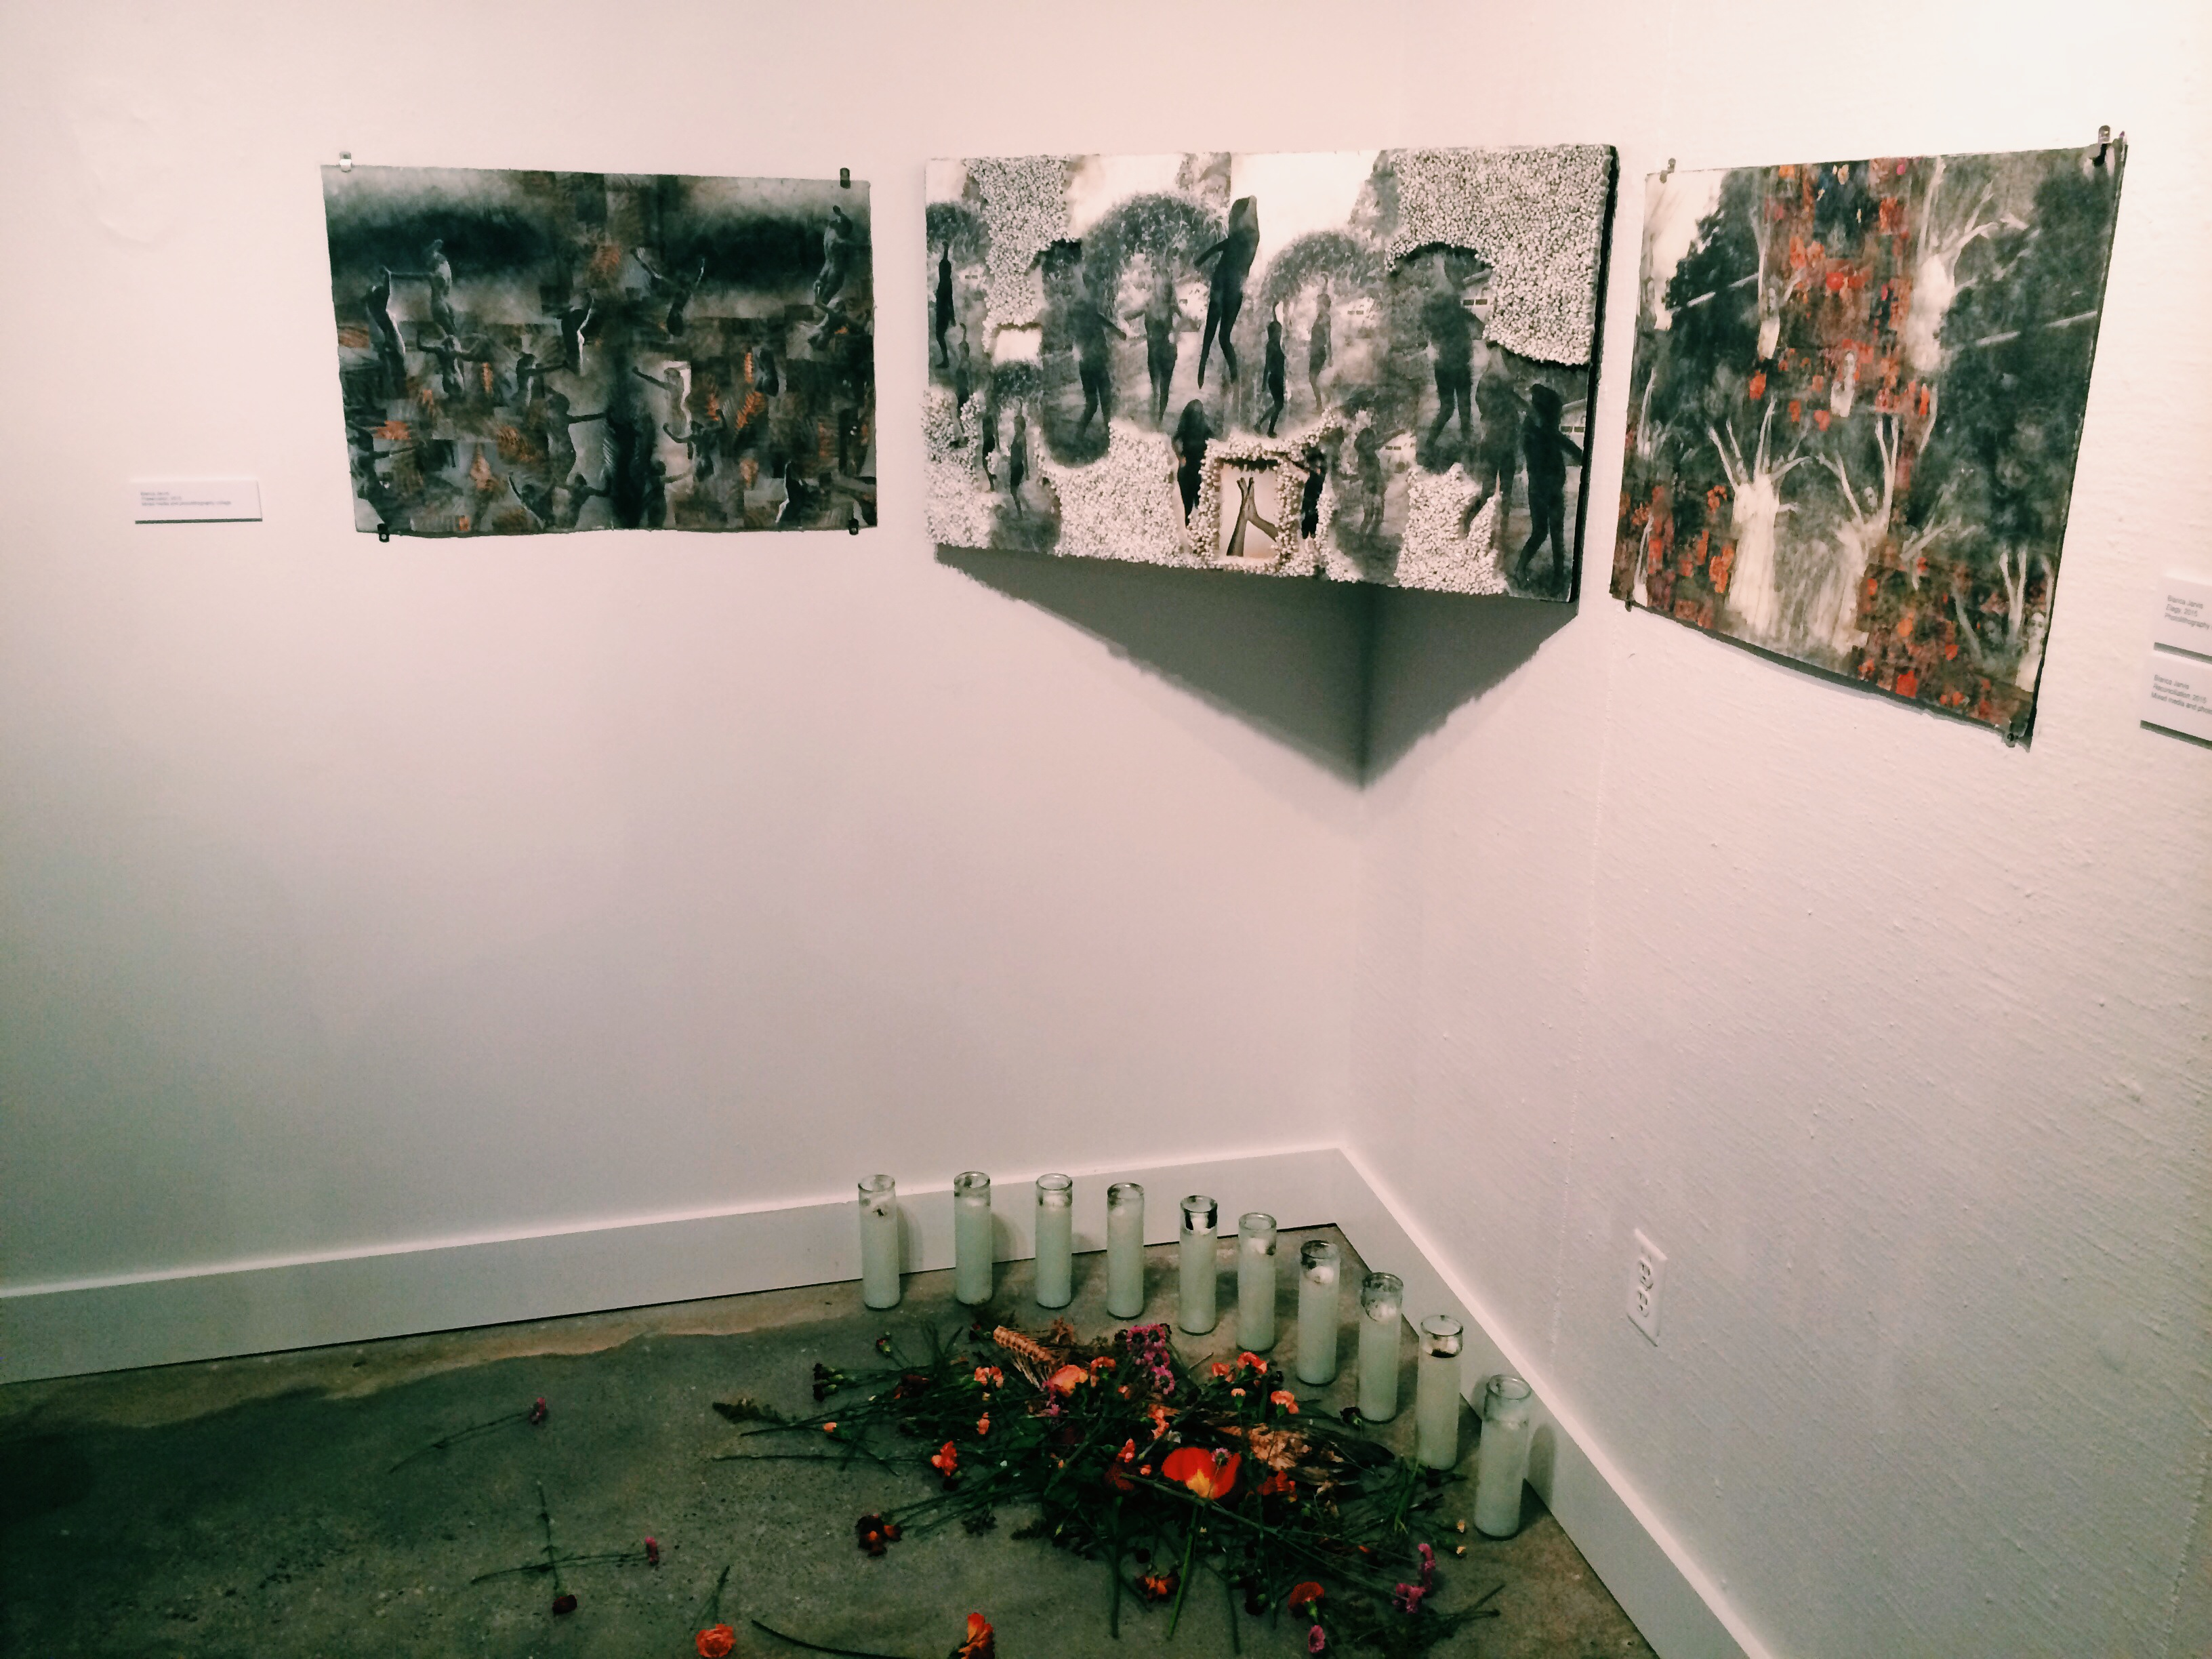 Several pieces by Bianca Jarvis, including Elegy and Reconciliation